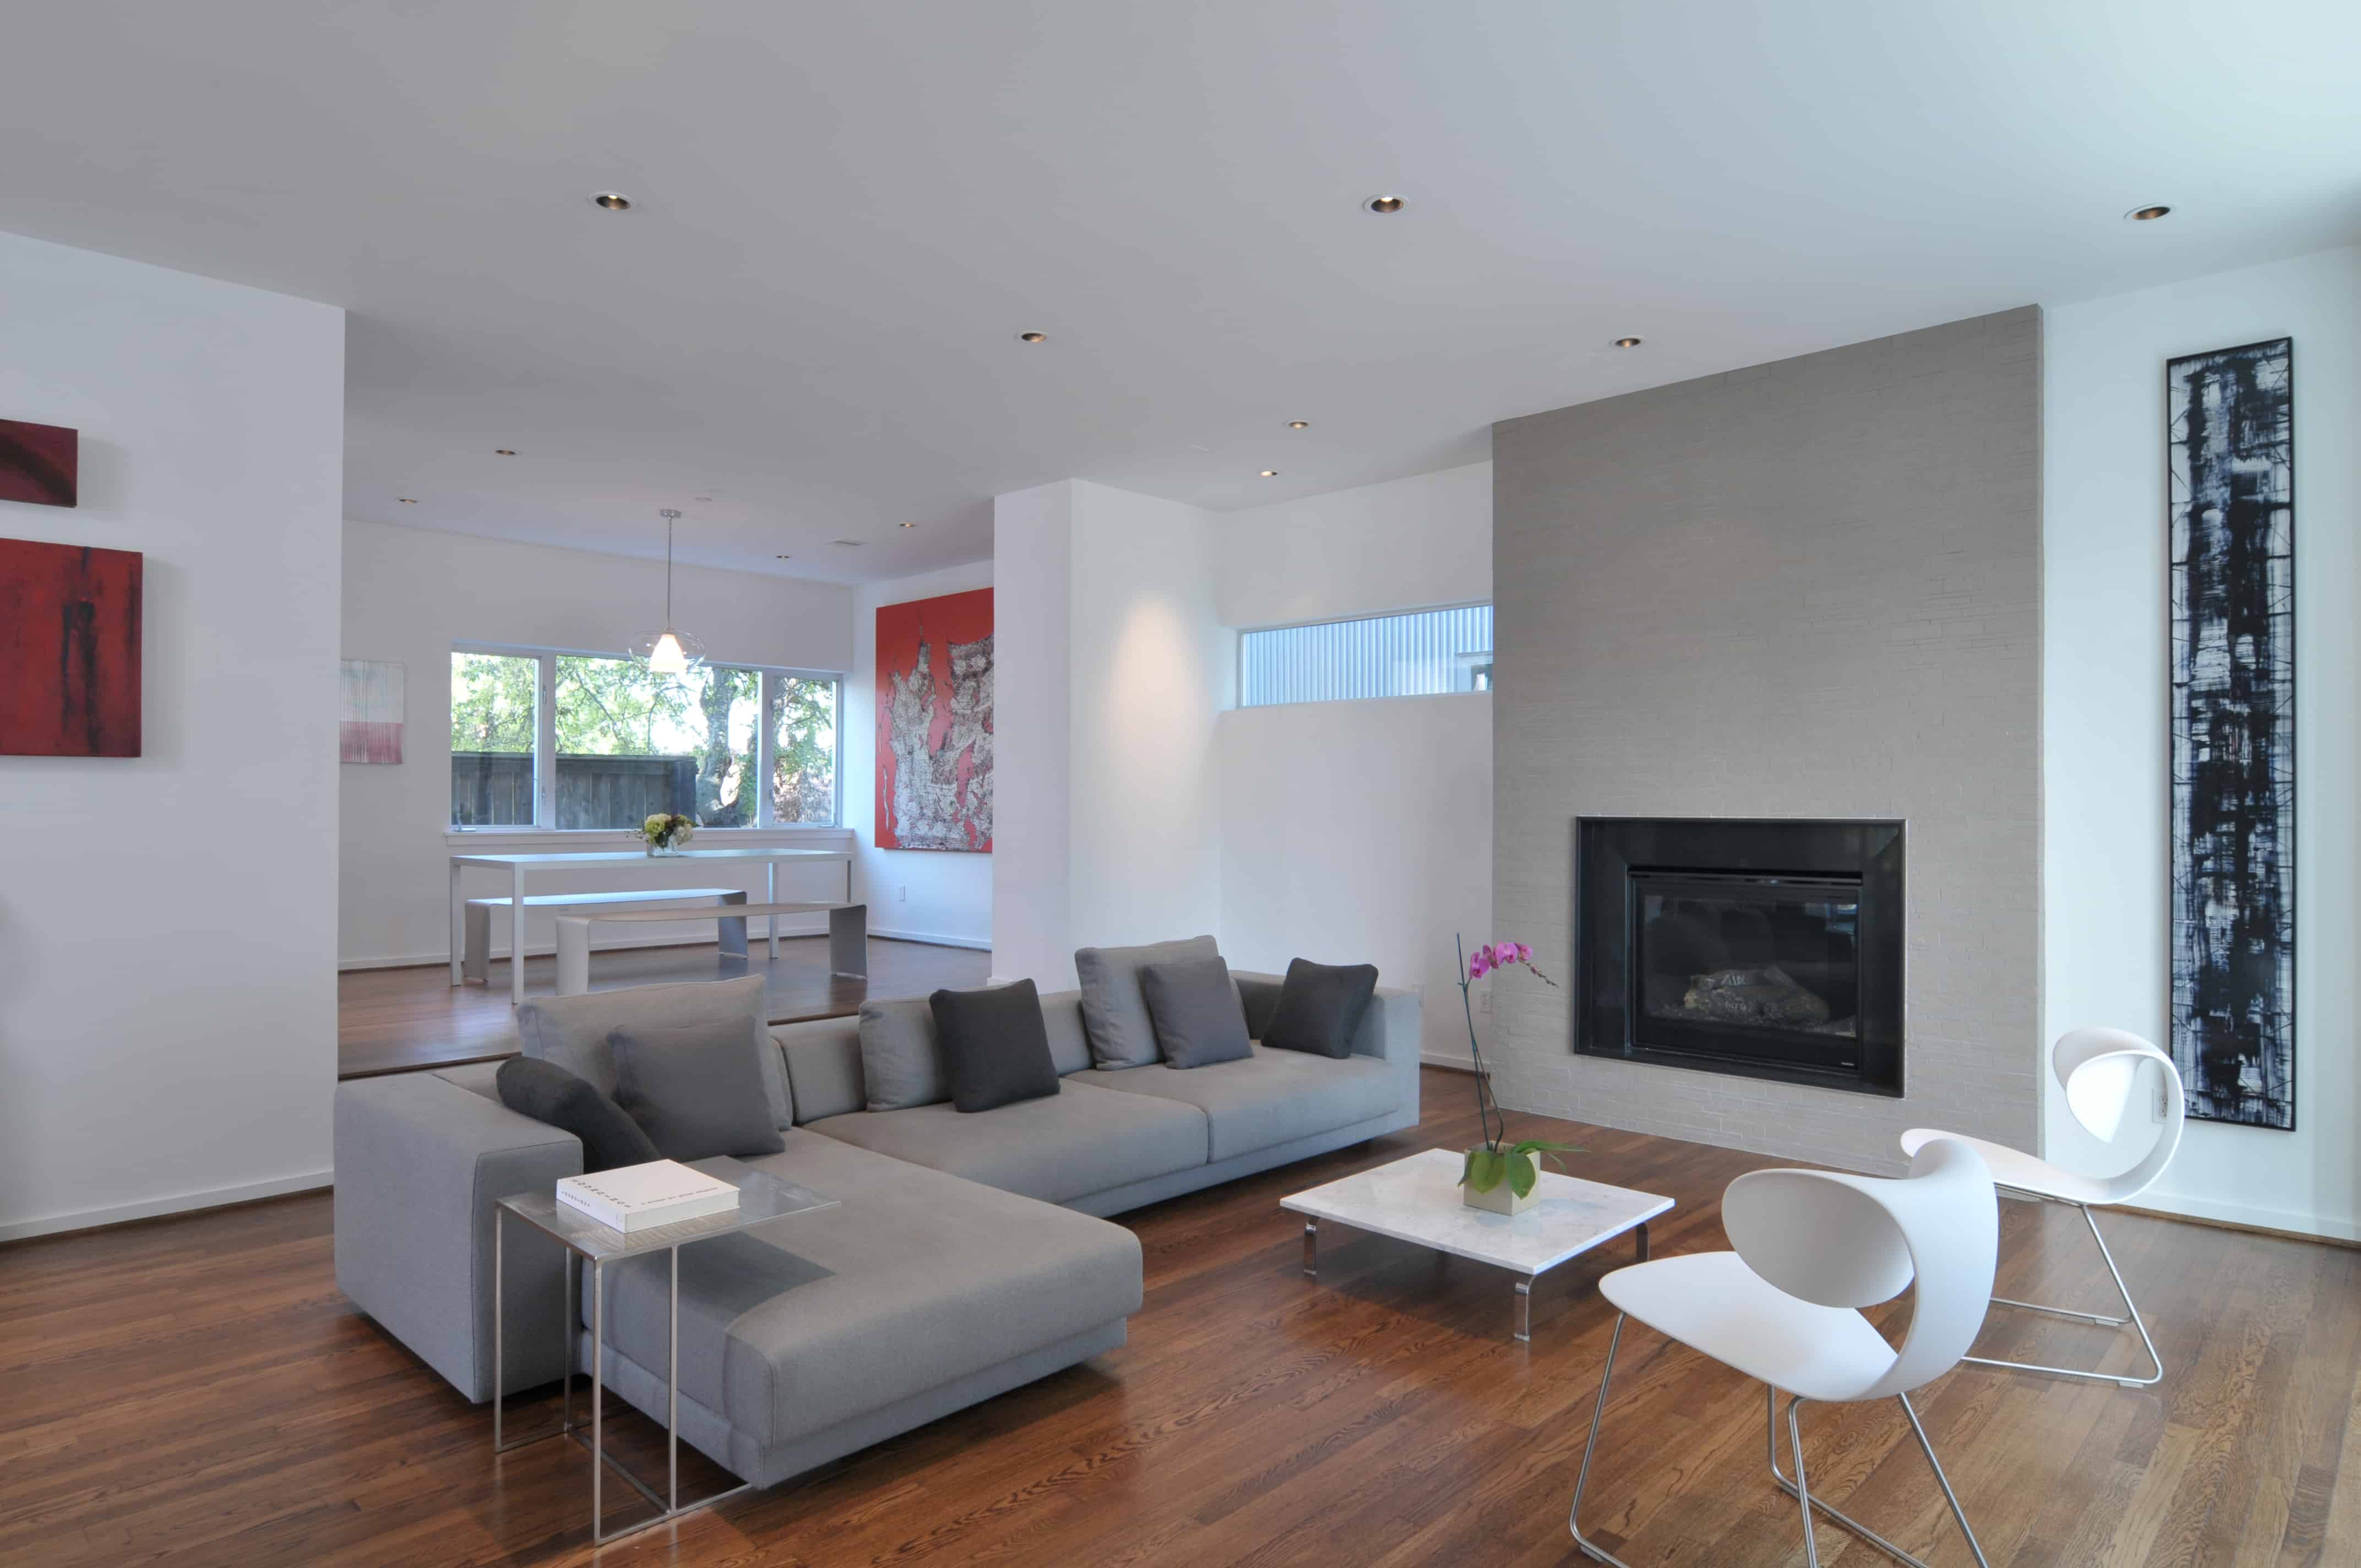 Southmore terrace sustainable houston modern home open living space.